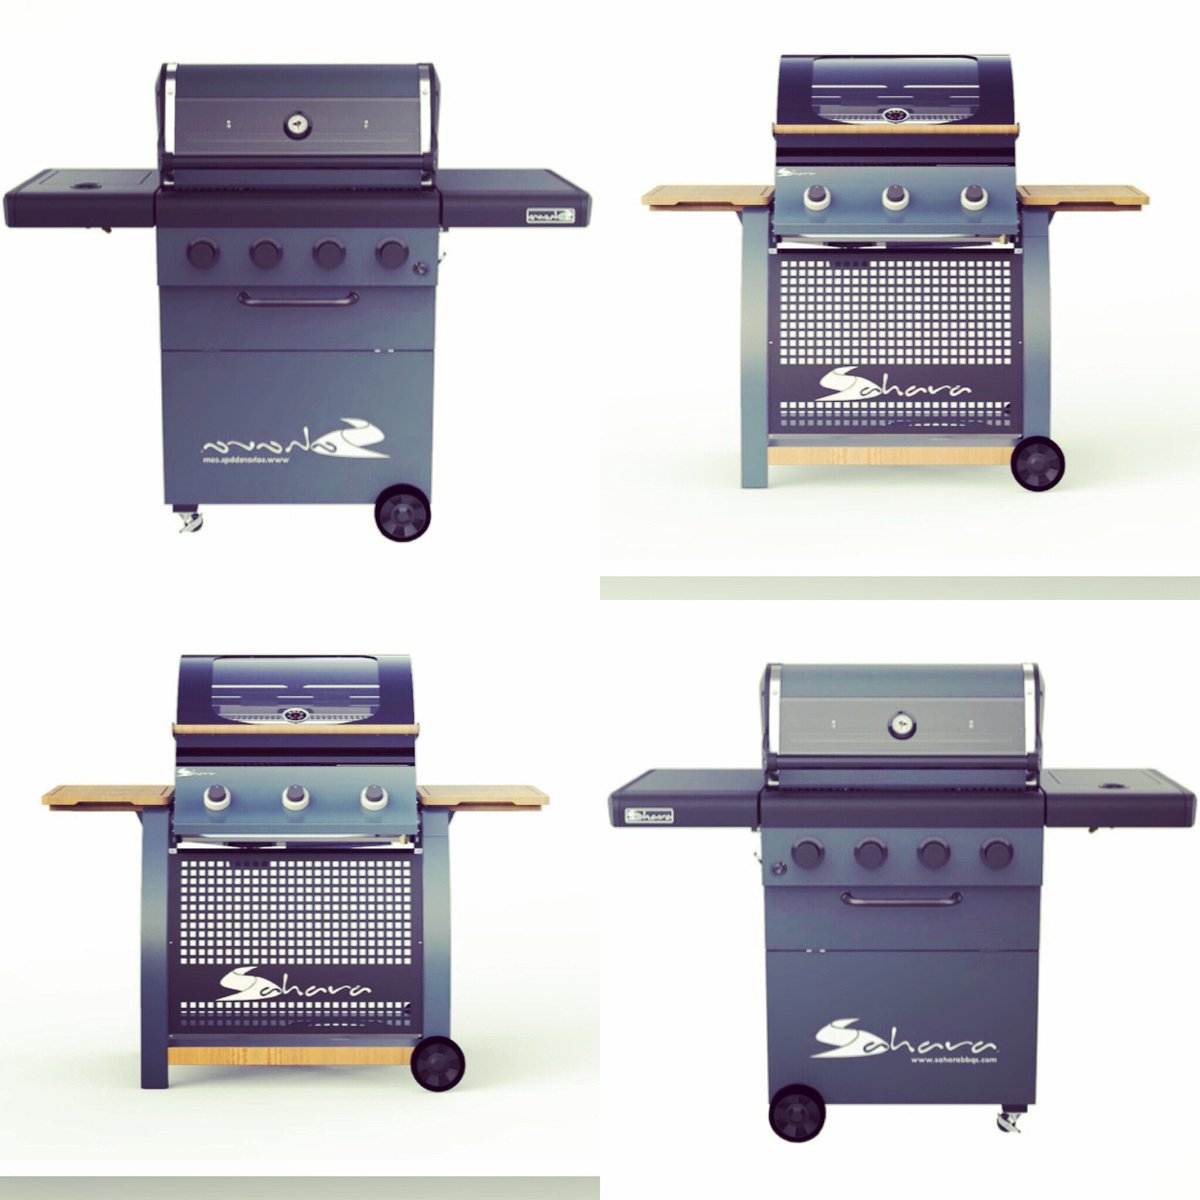 To all our Irish customers... Our 3 Burner Oak BBQ & X450 are back in stock in @woodies_ireland 🎉🙌🎉 Don't miss out, these BBQ's sold out unbelievably fast and are in high  demand! 🥳🥳 #bbq #gas #gasbbq #barbecue #saharabbq #backinstock #irish #demand #food #love #family https://t.co/V9993lC55k